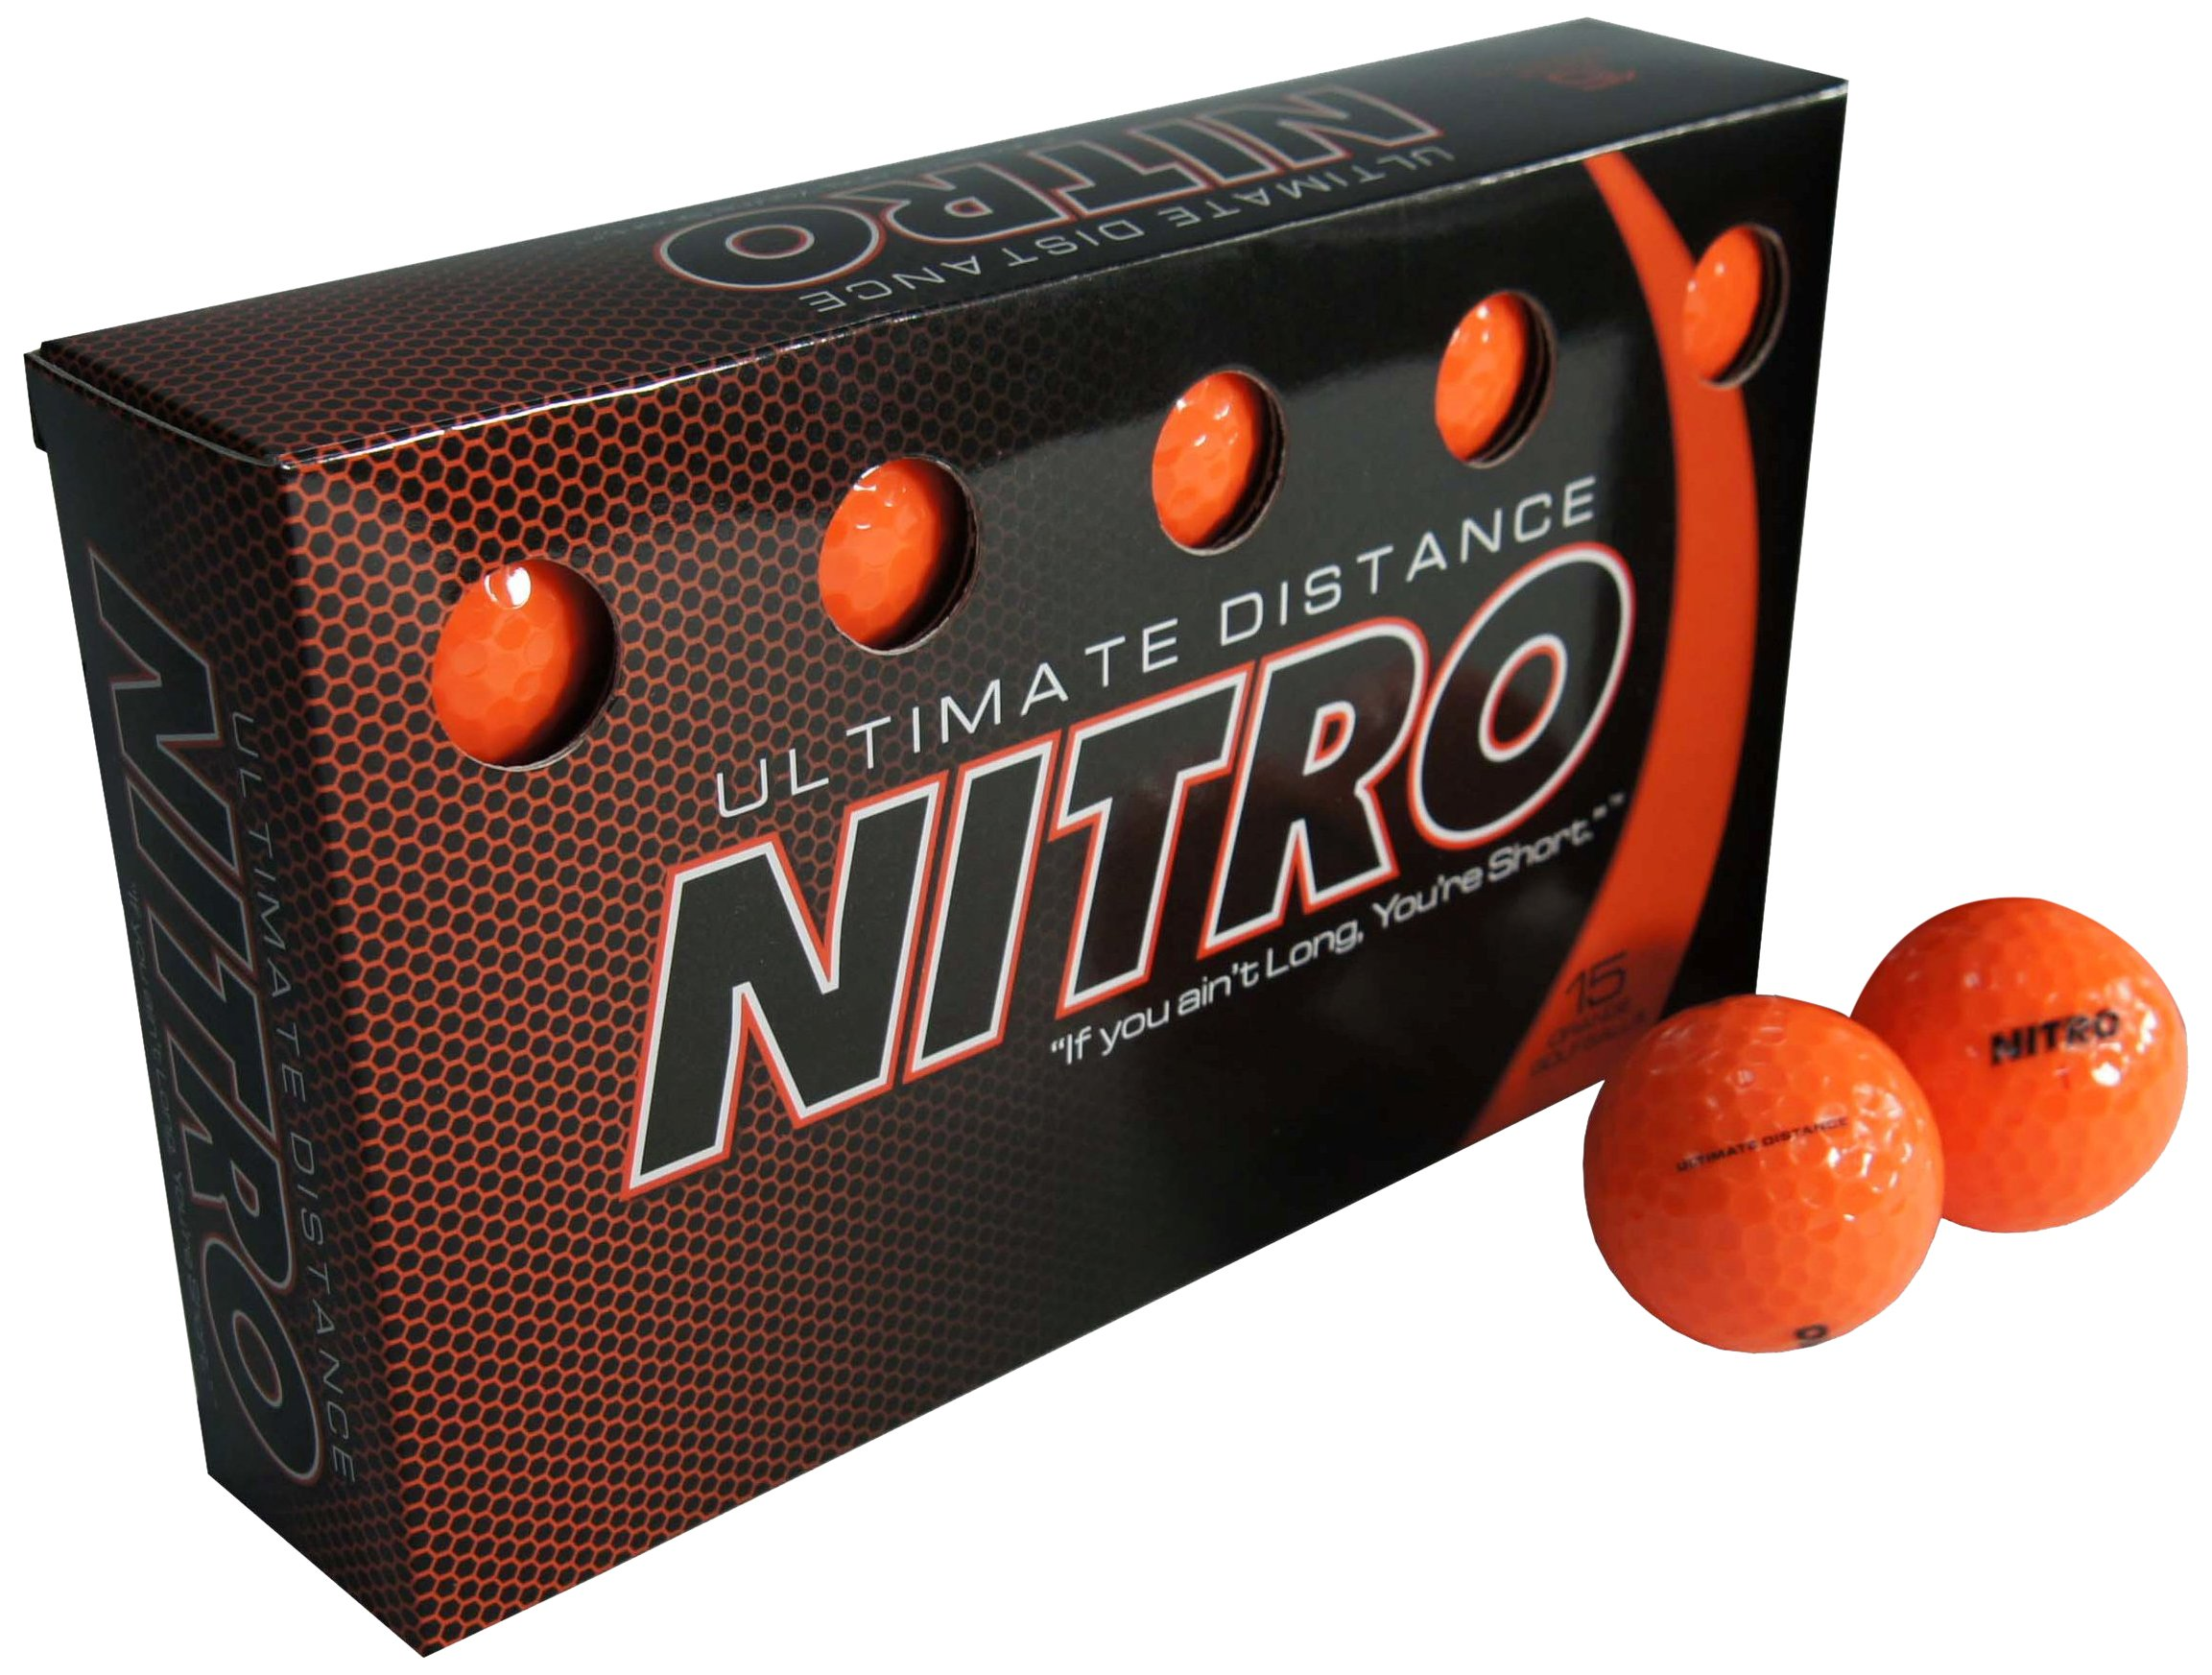 Long Distance High-Durability Golf Balls (15PK) All Levels-Nitro Ultimate Distance Titanium Core High Velocity Great Stop & Sticking ability Golf Balls USGA Approved-Total of 15-Orange by Nitro